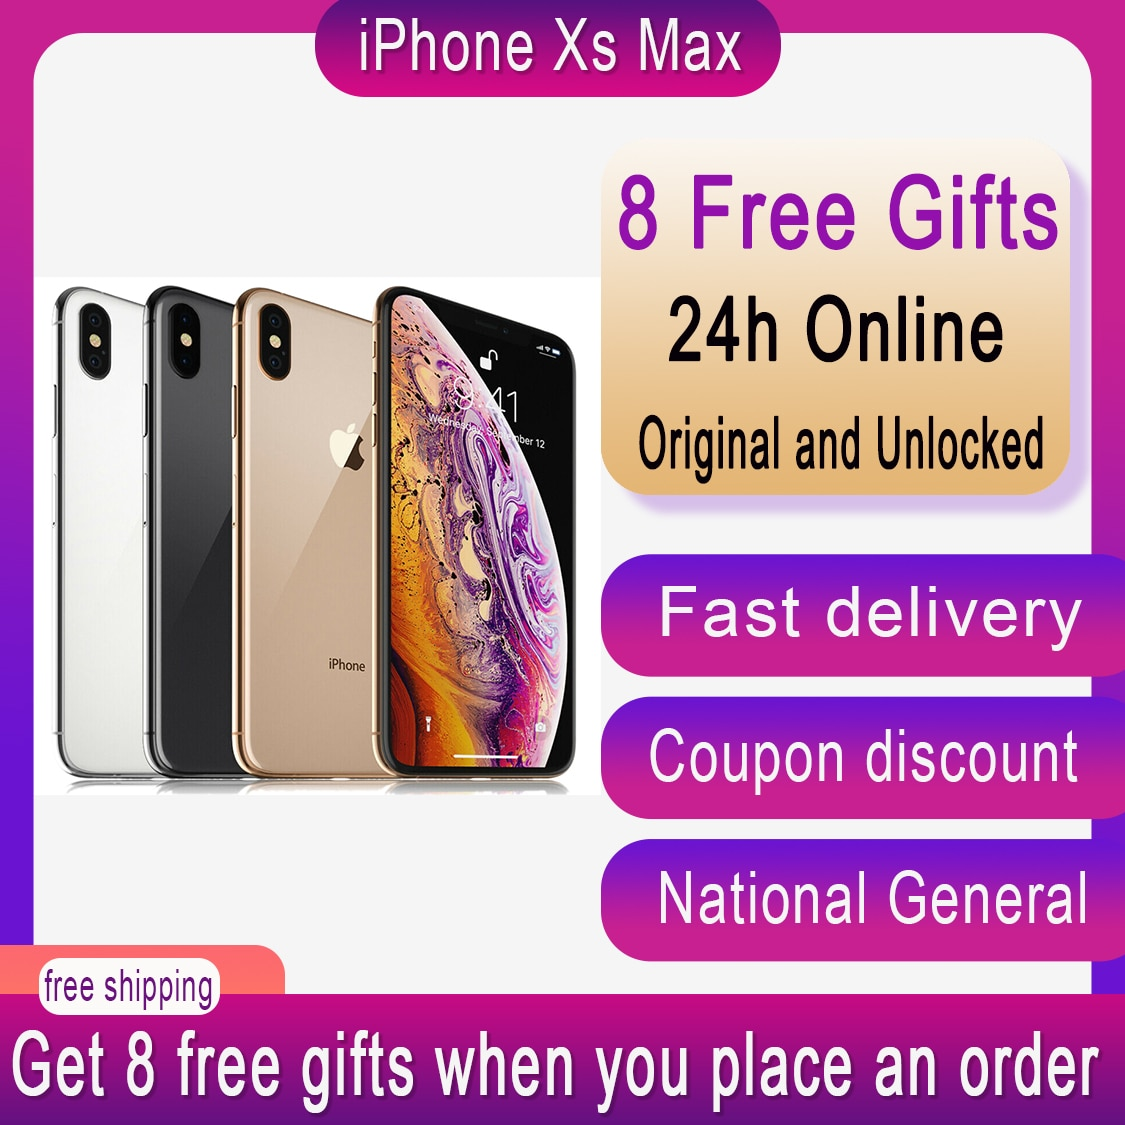 Genuine Original Apple iPhone XS Max 5.8 inch 4GB RAM 64/256GB ROM Smartphone Hexa Core IOS A12 Bionic NFC 4G LTE Cell Phone